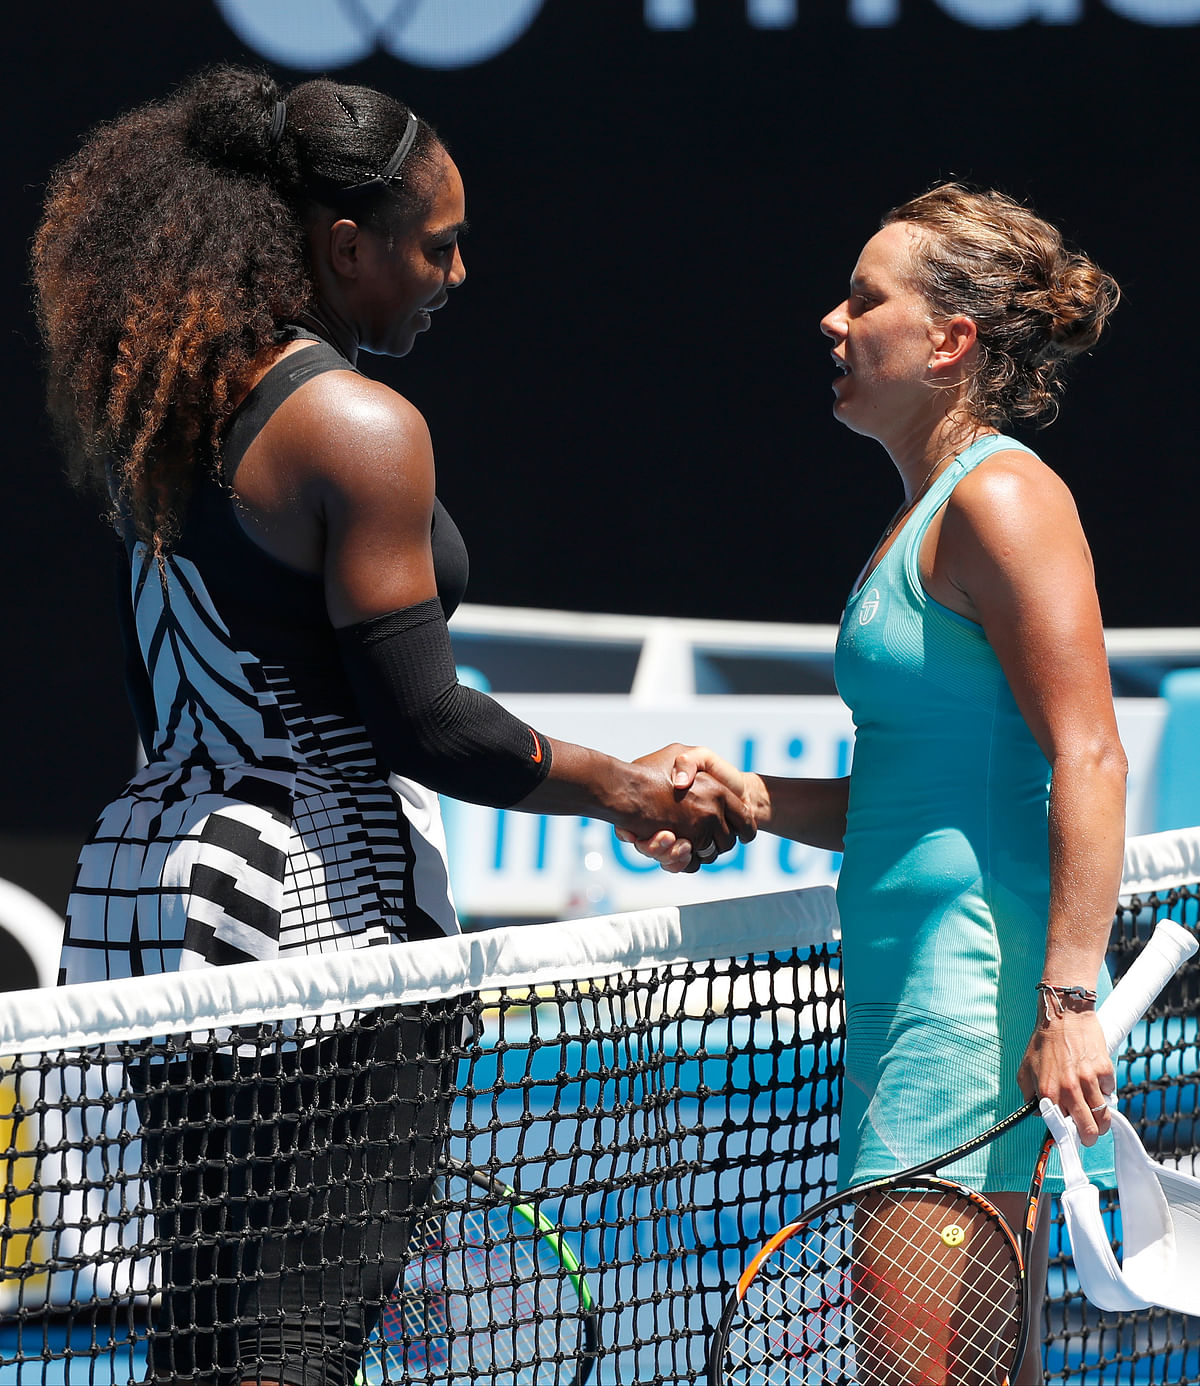 United States' Serena Williams, left, is congratulated by Barbora Strycova of the Czech Republic after winning their fourth round match at the Australian Open. (Photo: AP)